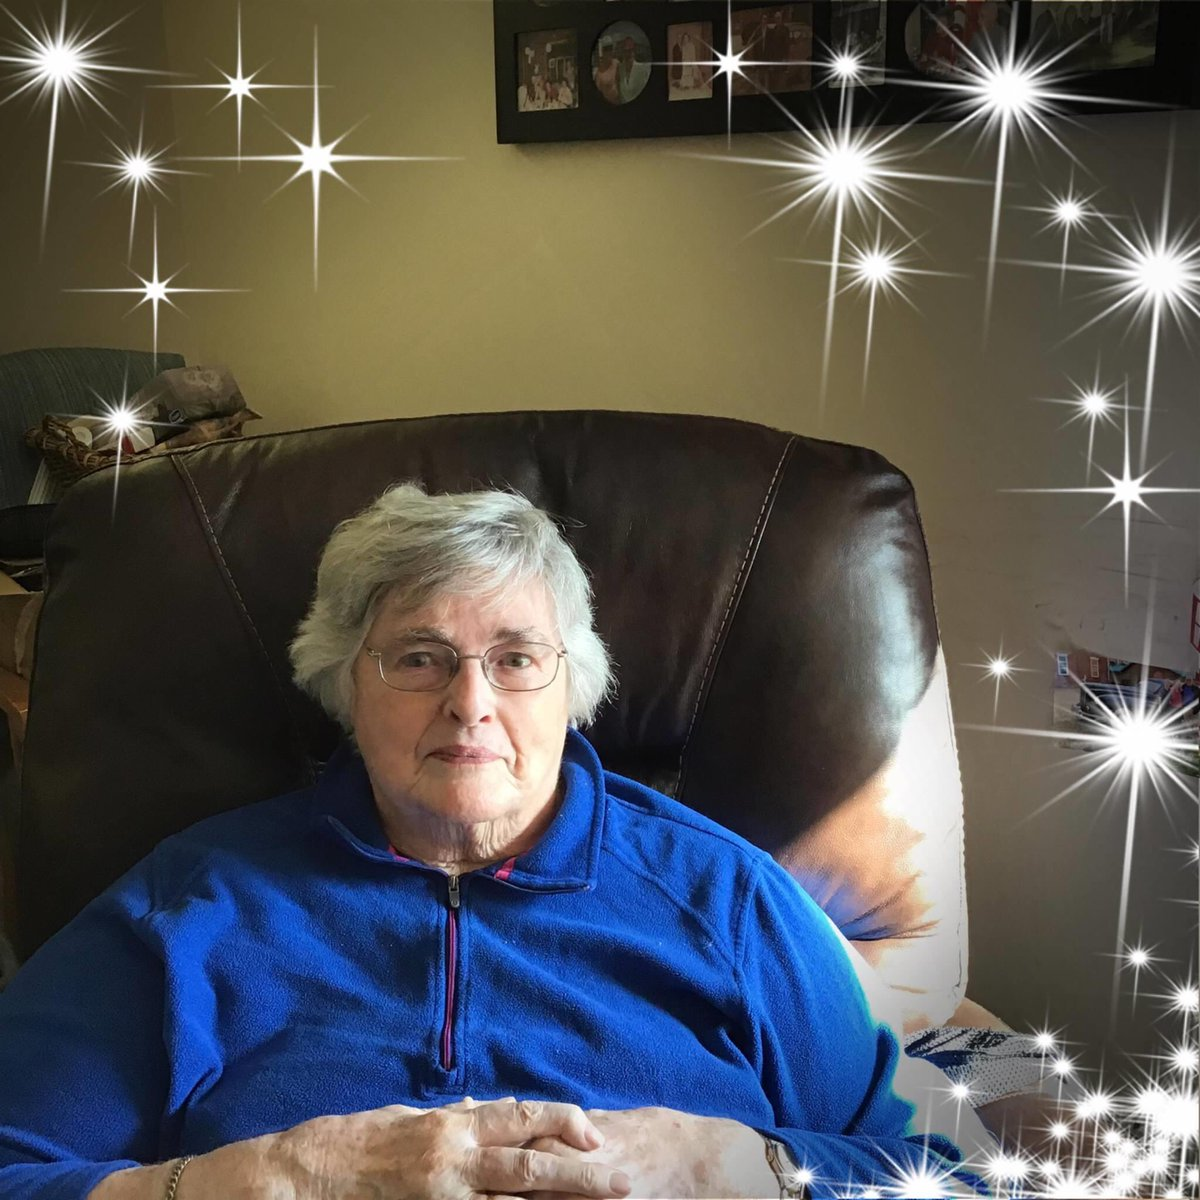 Hi all. My lovely mom passed away from #Covid19 on Saturday morning. This is a ruthless virus and none of us will be spared the sorrow it lays down in its wake. Please, #StayHome or if you HAVE to go out, stay safe. Keep our healthcare workers safe and let them take a break.💜